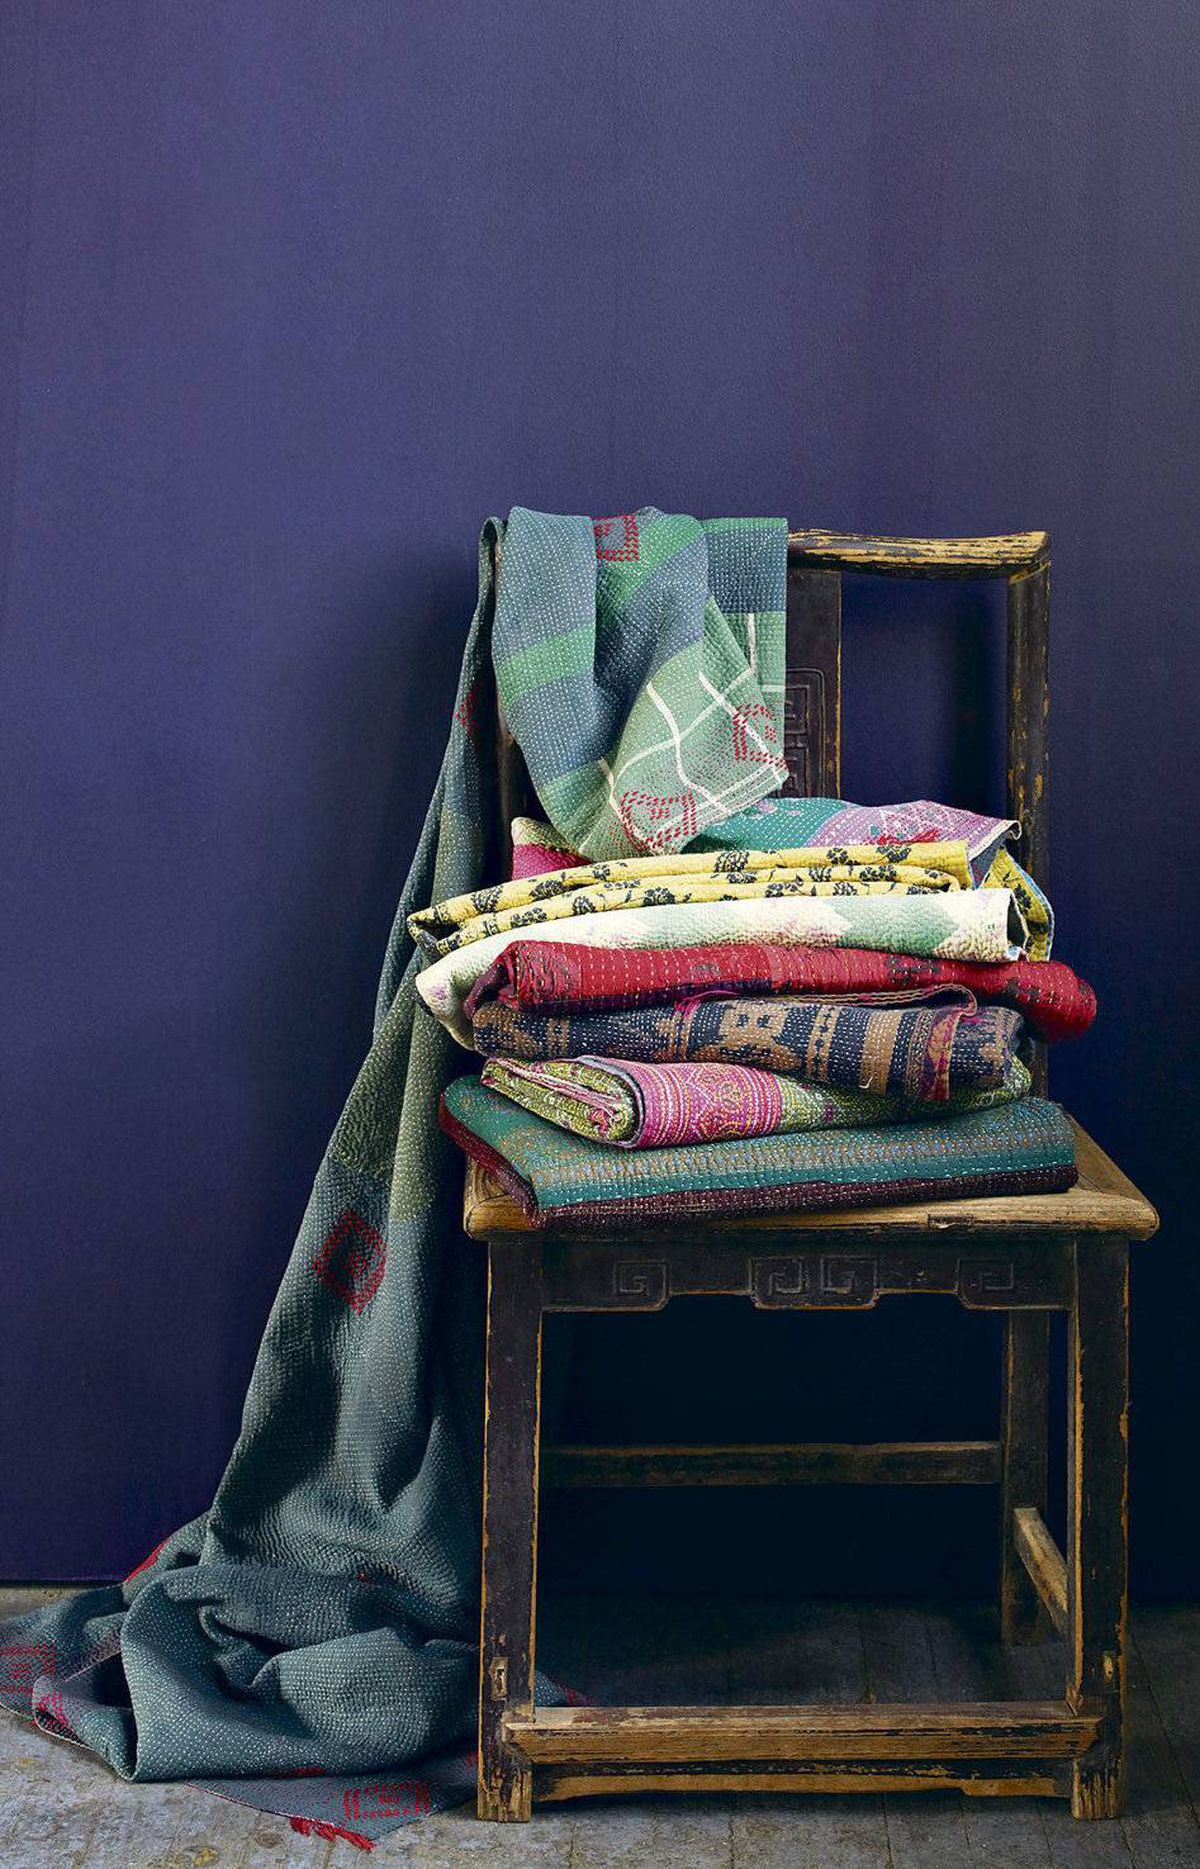 Have a basket of wraps and blankets on hand to help combat any chill. Hand-embroidered, these quilted throws from India are made by female artisans from recycled vintage saris. Kantha throws, $99 at West Elm.